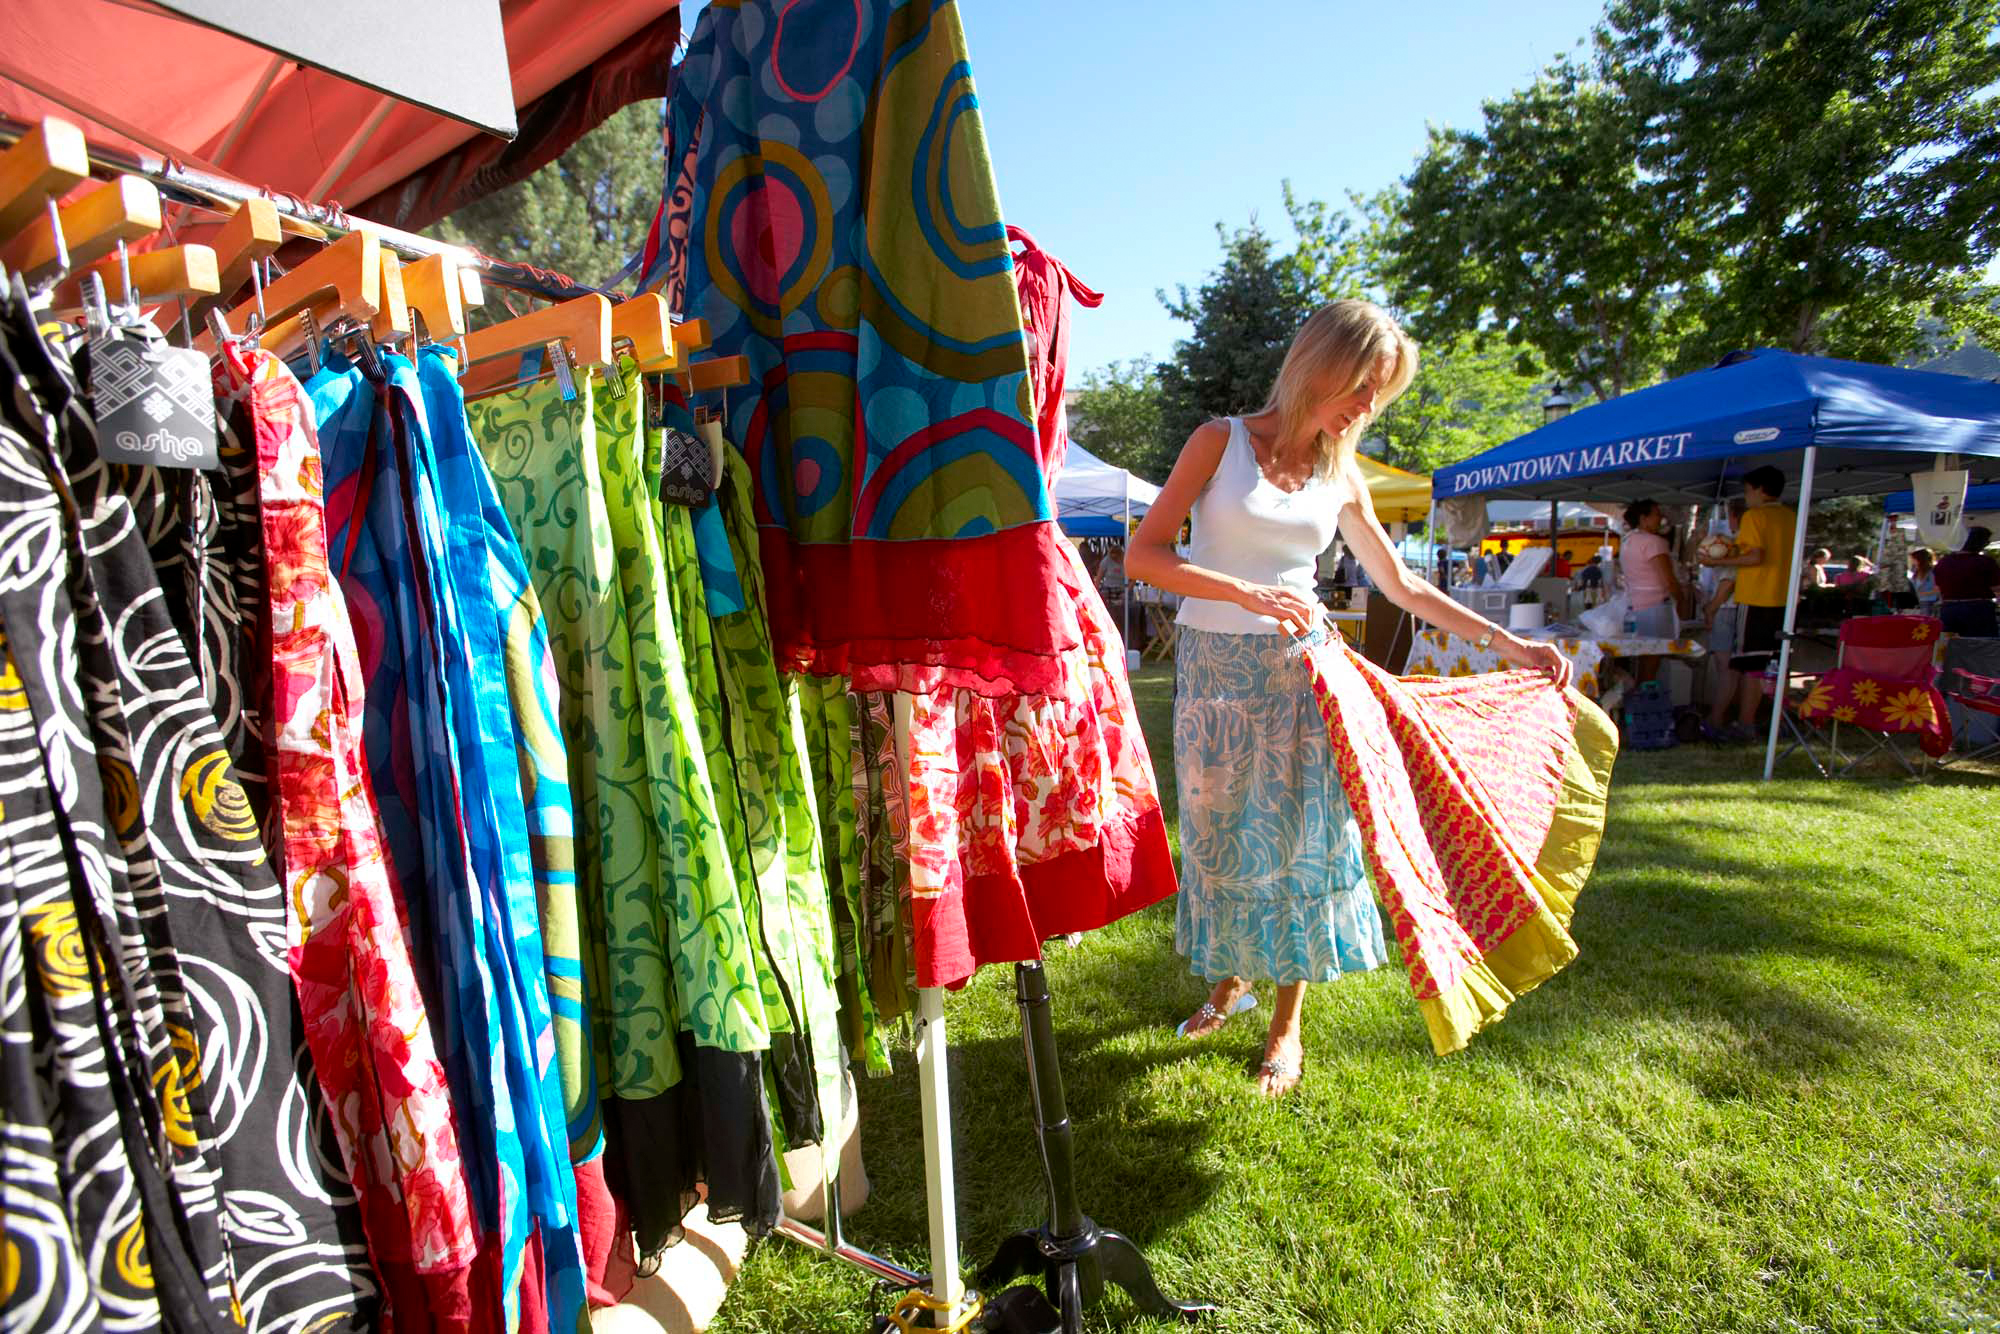 Shopping at the Glenwood Springs Downtown Market